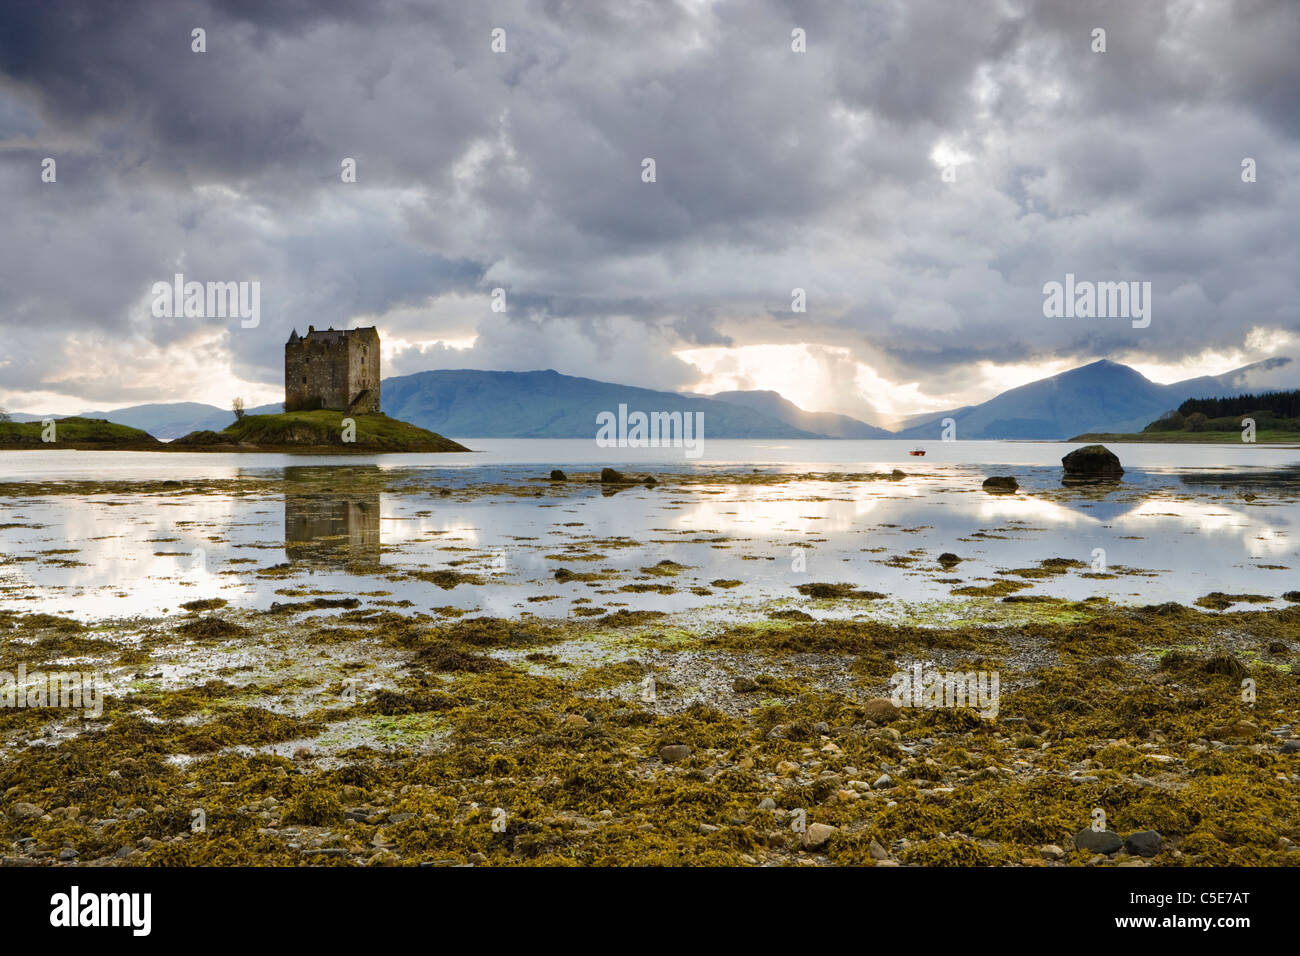 Castle Stalker, Argyll, Scotland, UK - Stock Image